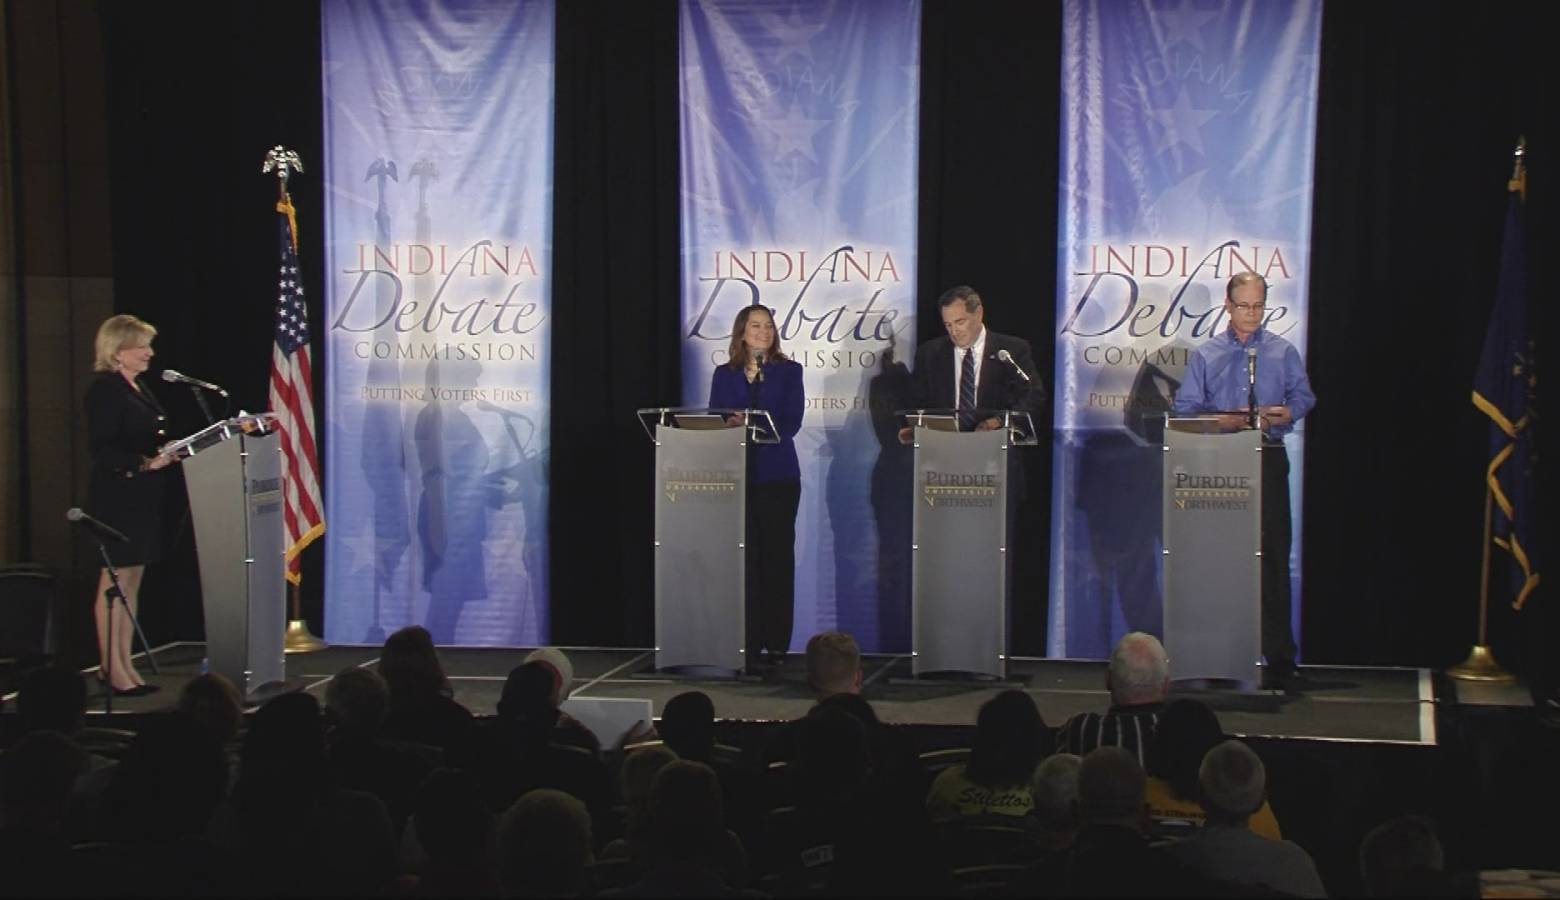 U.S. Senate candidates for Indiana debate on Oct. 8. (Courtesy of the Indiana Debate Commission)